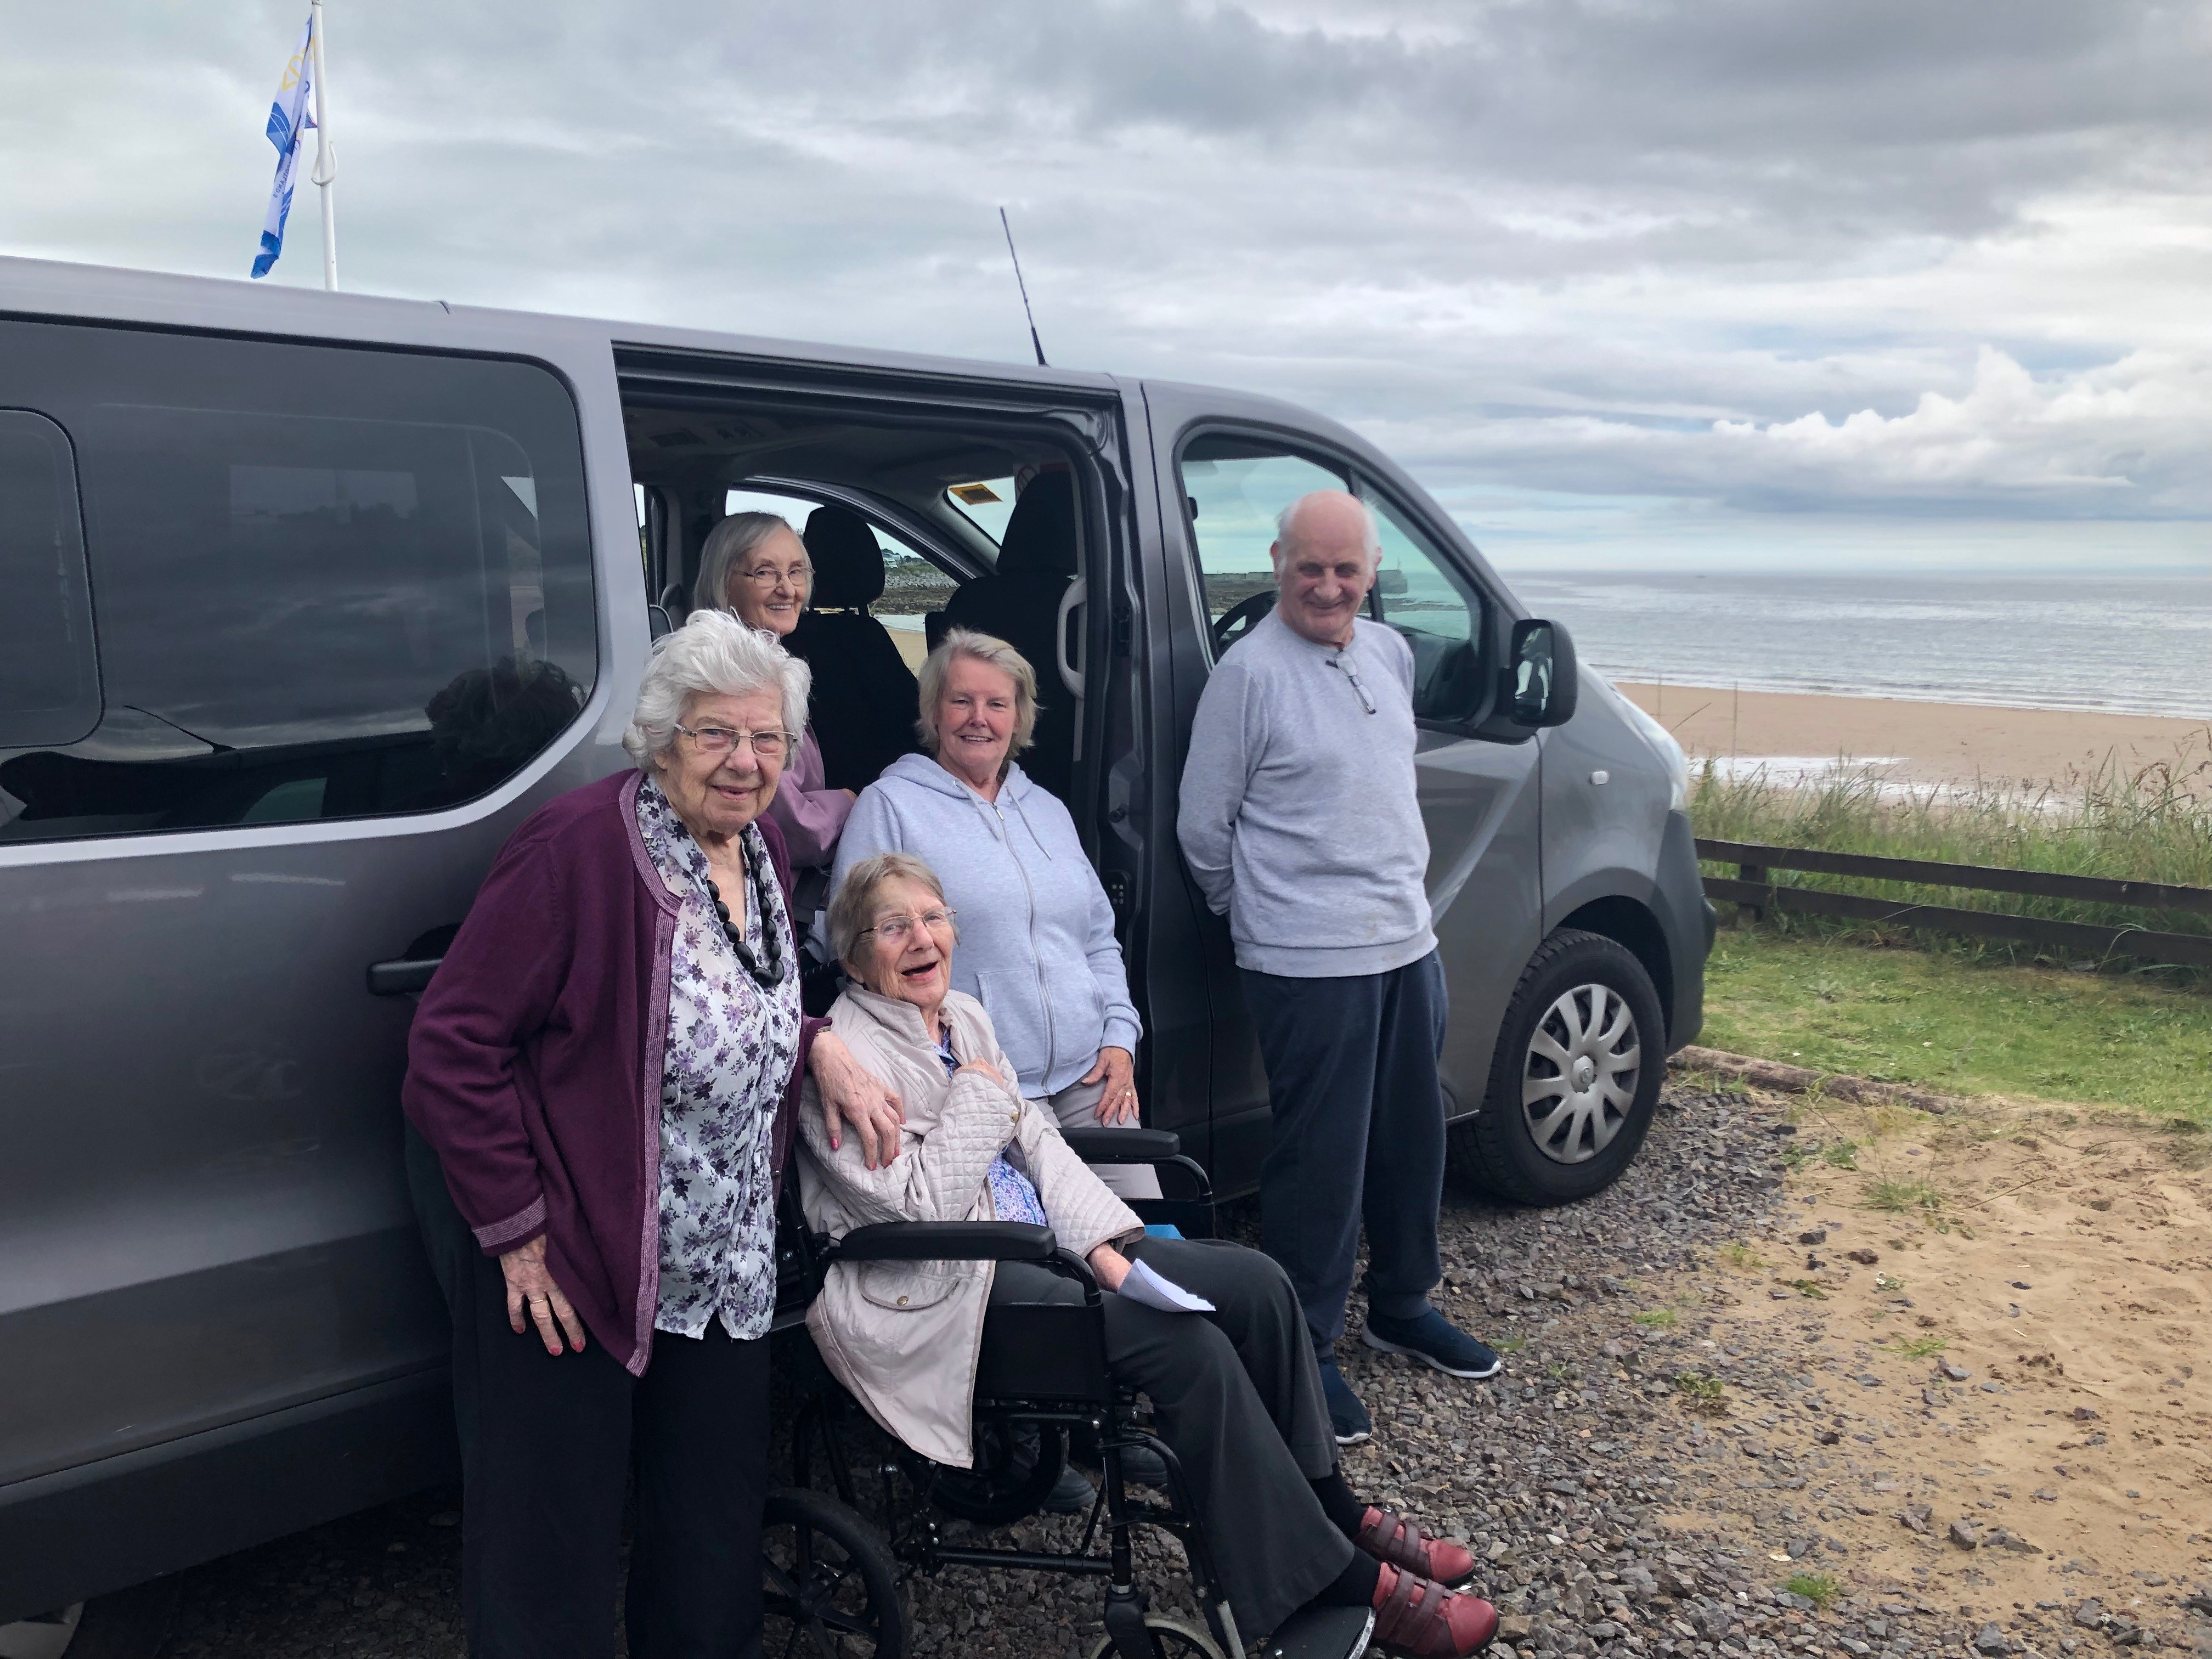 A brand new minibus has allowed residents to get out and about oncemore